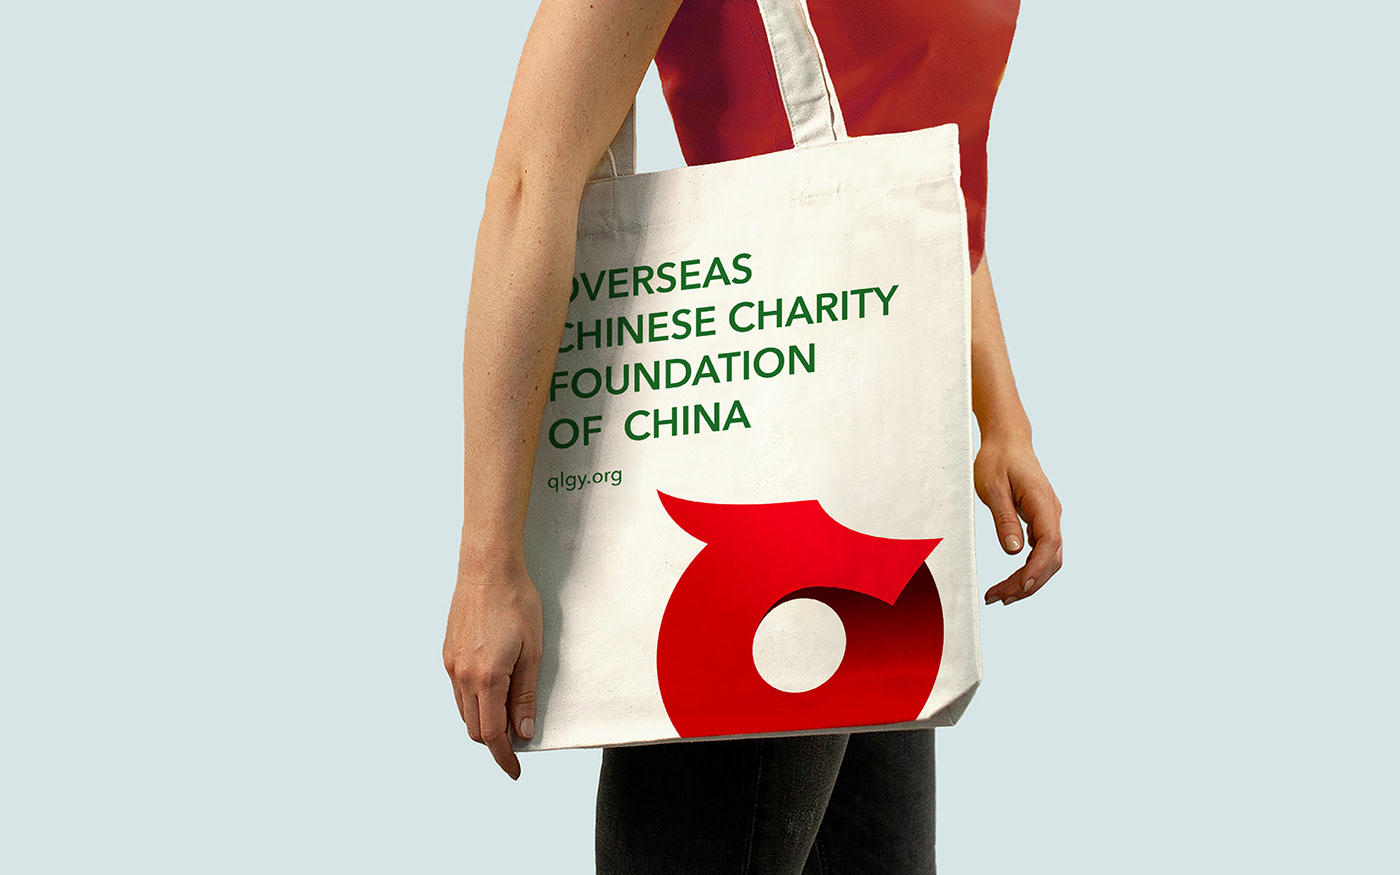 OVERSEAS  CHINESE  CHARITY FOUNDATION  OF   CHINA